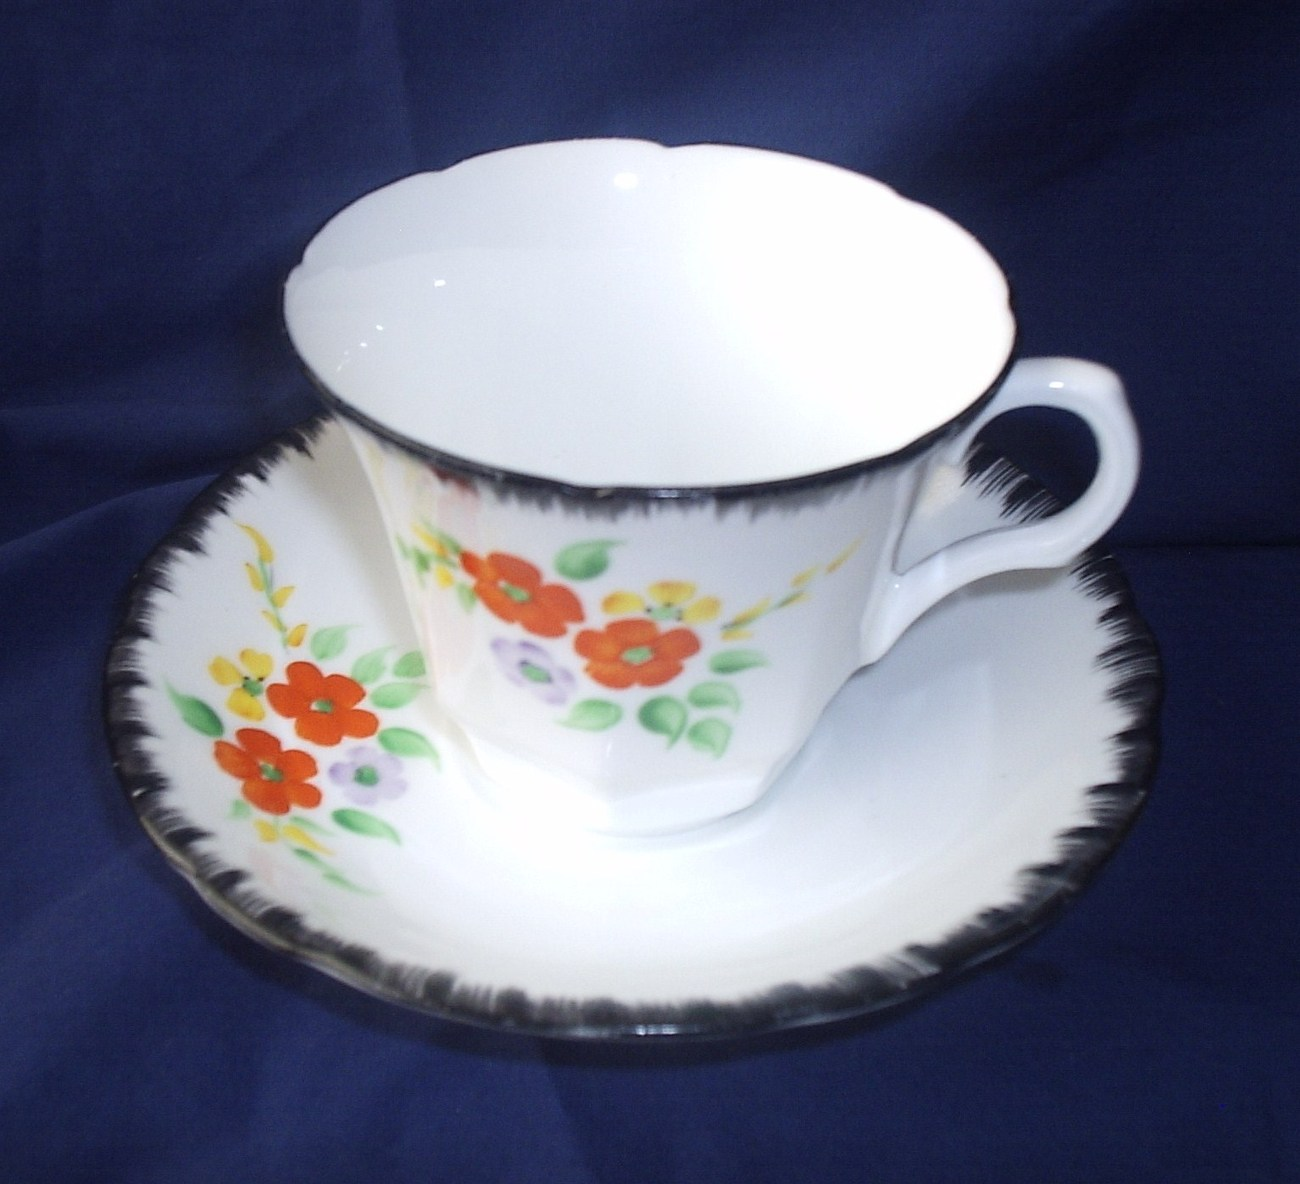 Melba #4324 Cup and Saucer Black White Flora Collector Item Orange Flowers